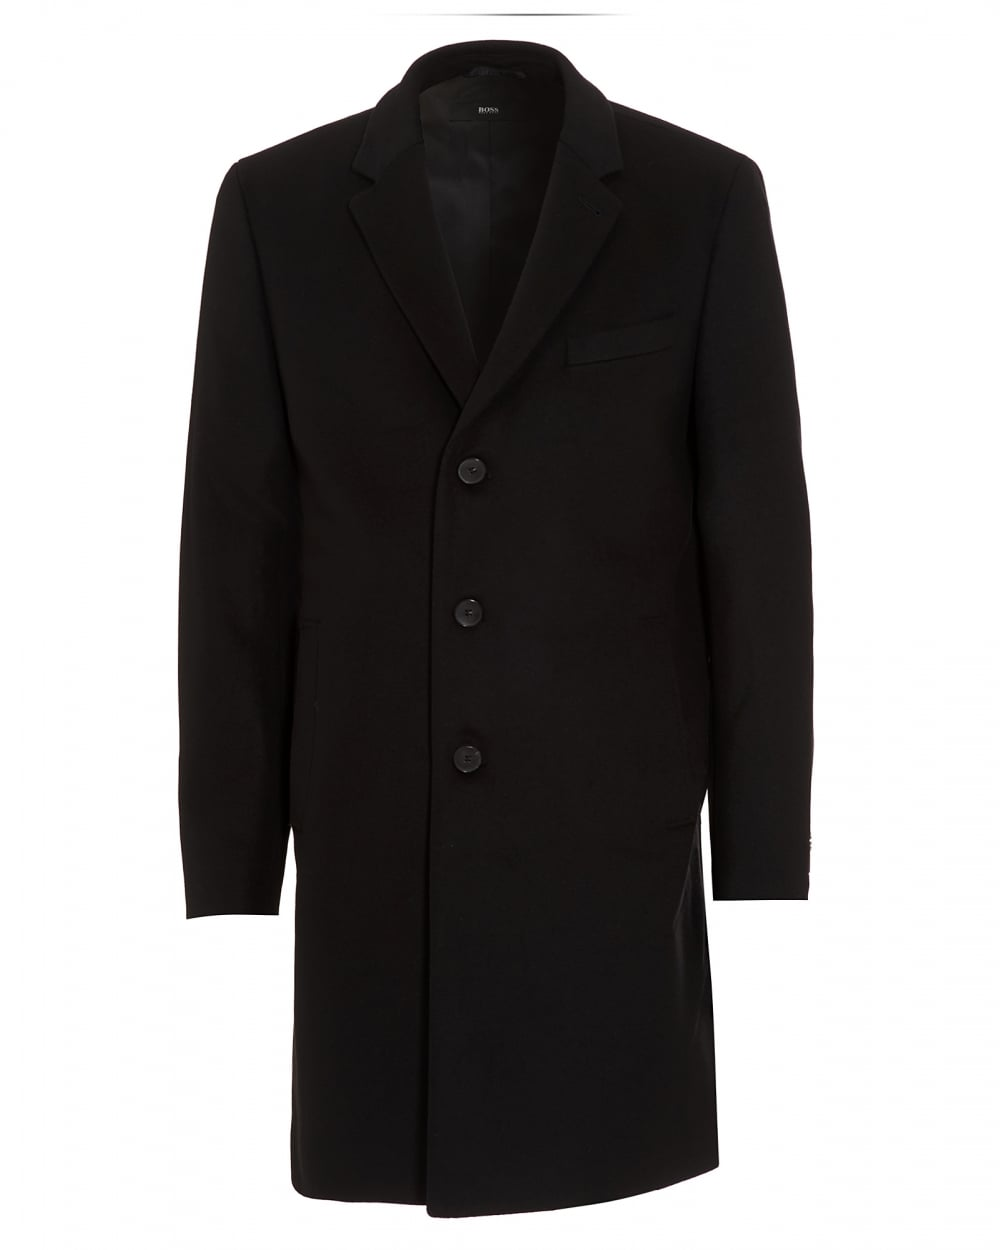 Product Features men banes trench crombie raing mens sports coat coat long men coat.